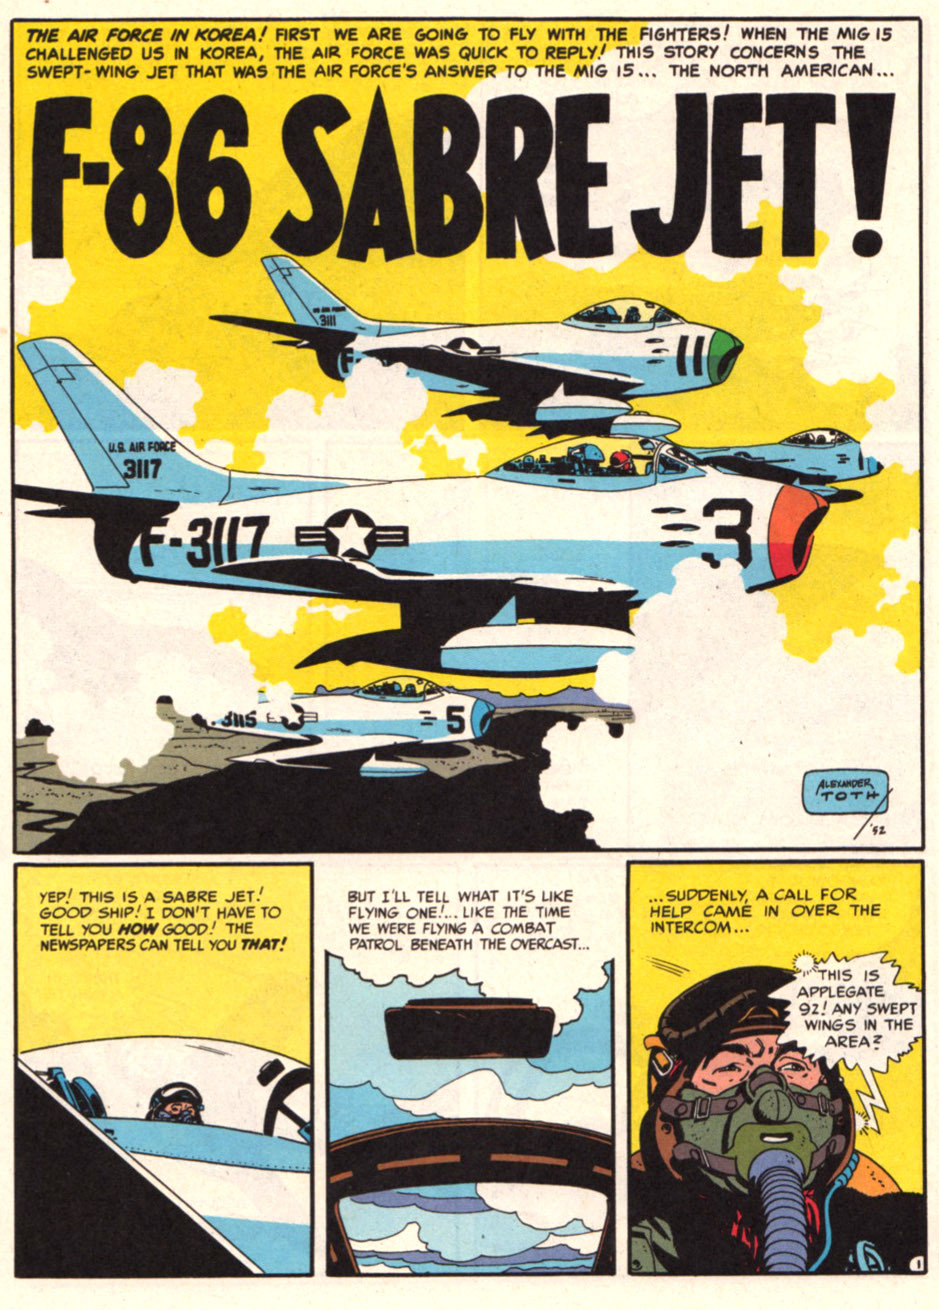 F86 Sabre Jet - Harvey Kurtzman and Alex Toth page 1